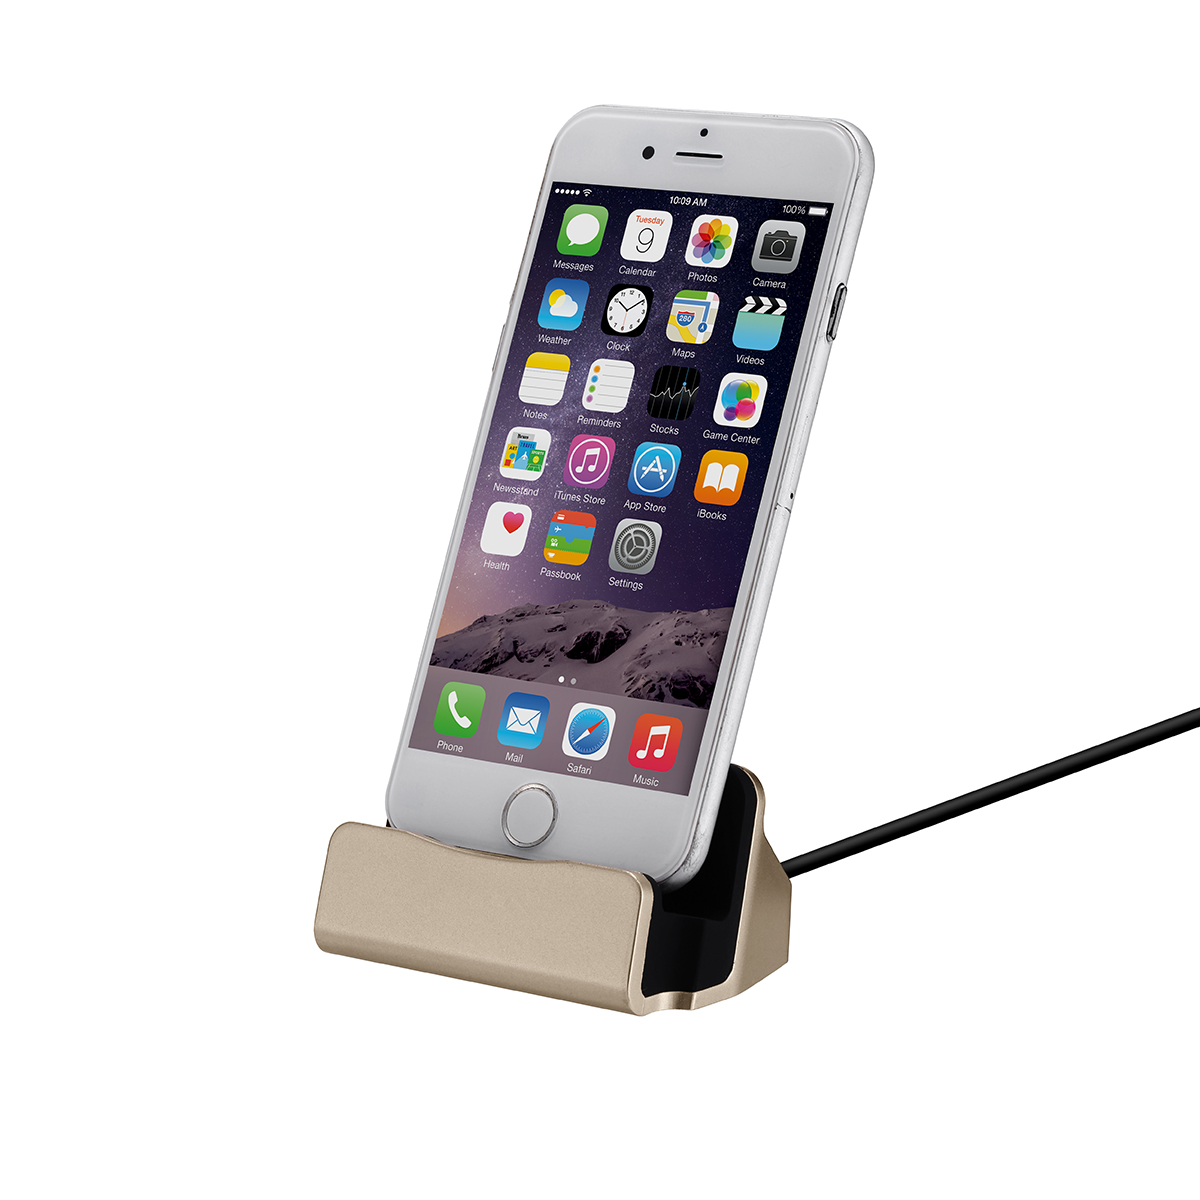 iphone 6 docking station desktop charger stand station sync dock cradle for 3077